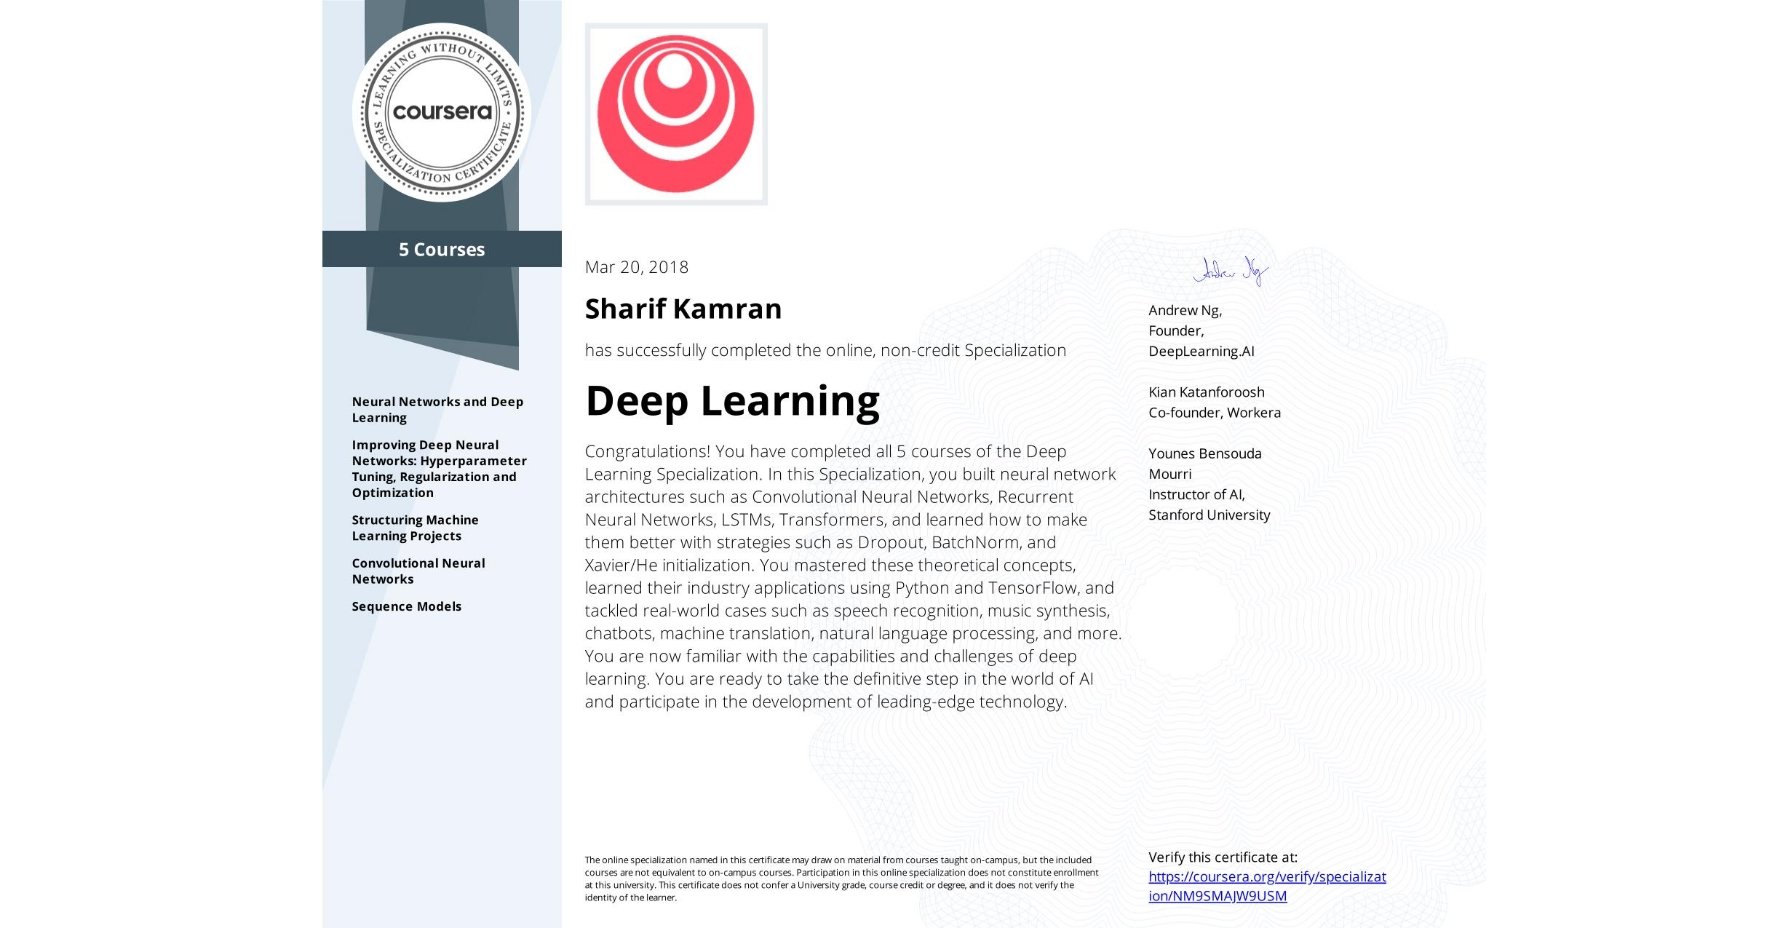 View certificate for Sharif Kamran, Deep Learning, offered through Coursera. Congratulations! You have completed all 5 courses of the Deep Learning Specialization.  In this Specialization, you built neural network architectures such as Convolutional Neural Networks, Recurrent Neural Networks, LSTMs, Transformers, and learned how to make them better with strategies such as Dropout, BatchNorm, and Xavier/He initialization. You mastered these theoretical concepts, learned their industry applications using Python and TensorFlow, and tackled real-world cases such as speech recognition, music synthesis, chatbots, machine translation, natural language processing, and more.  You are now familiar with the capabilities and challenges of deep learning. You are ready to take the definitive step in the world of AI and participate in the development of leading-edge technology.